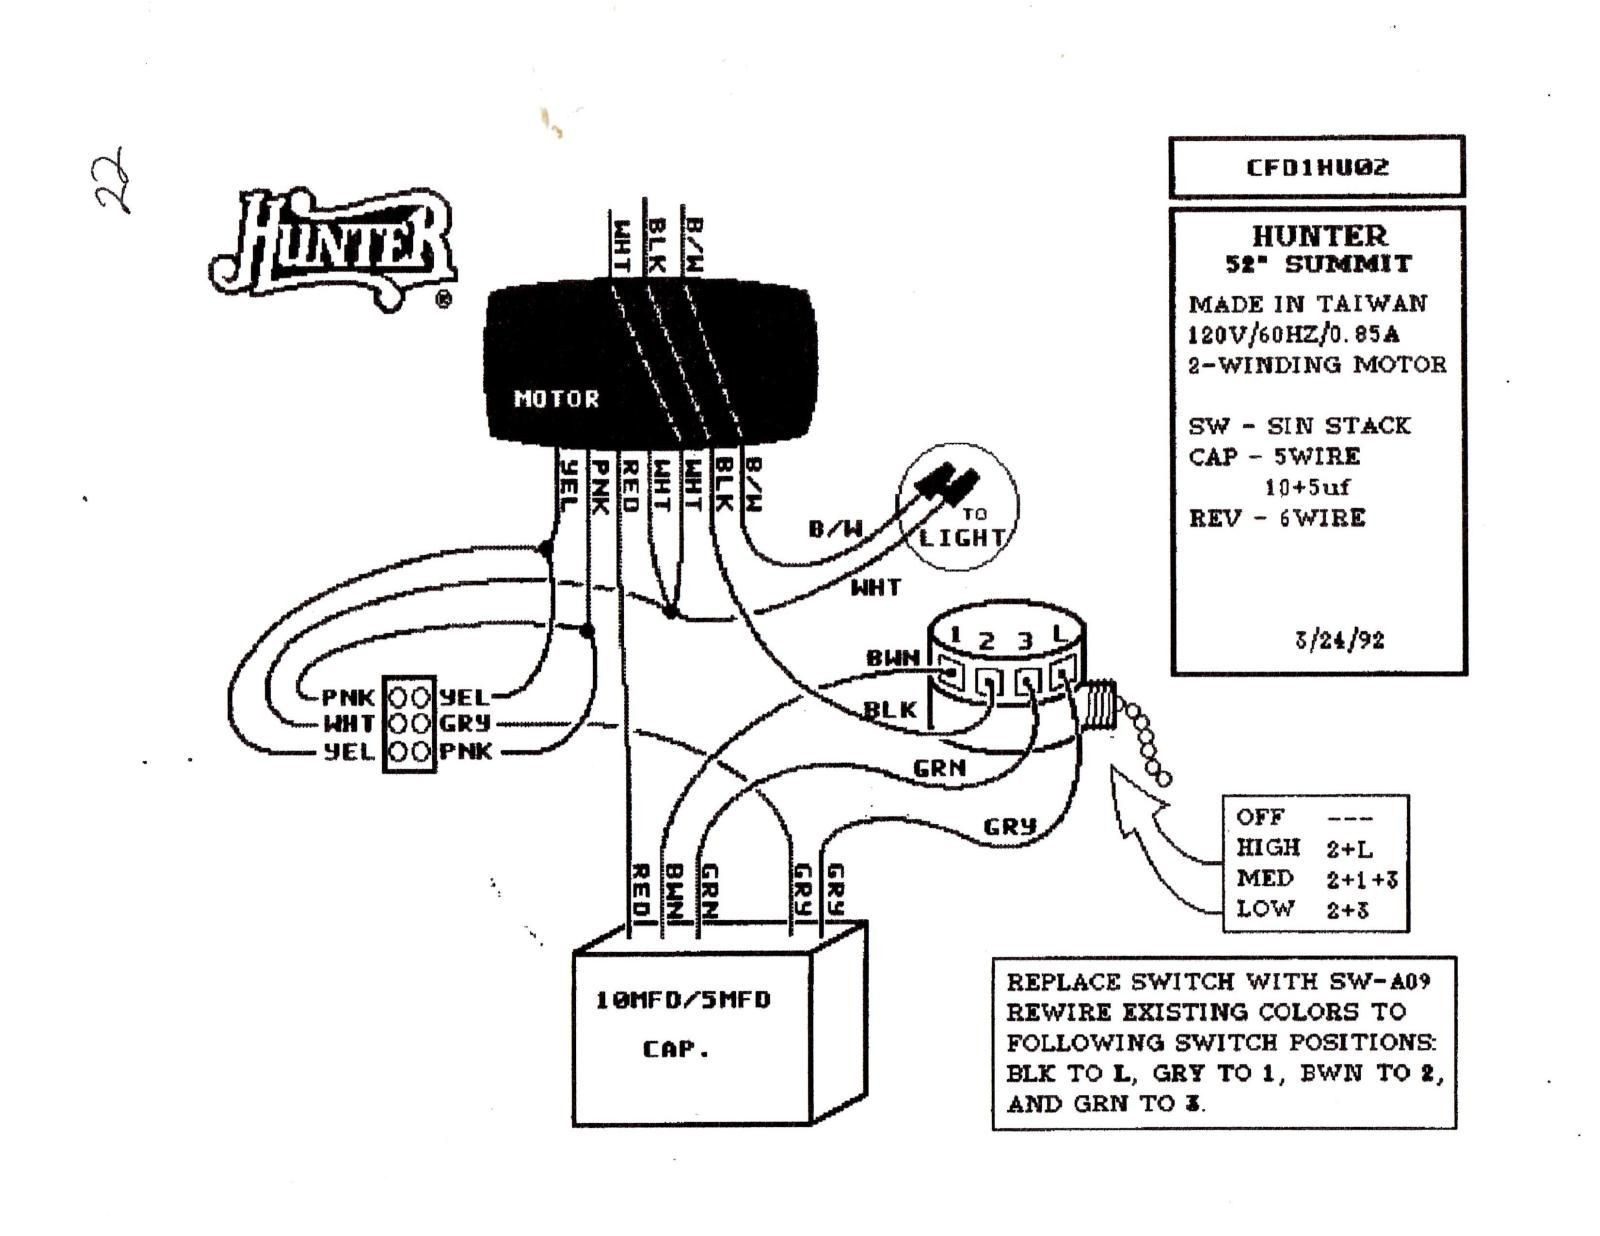 Wiring Diagram for Ceiling Fan Switch New Hunter Ceiling Fan Speed Switch Wiring Diagram